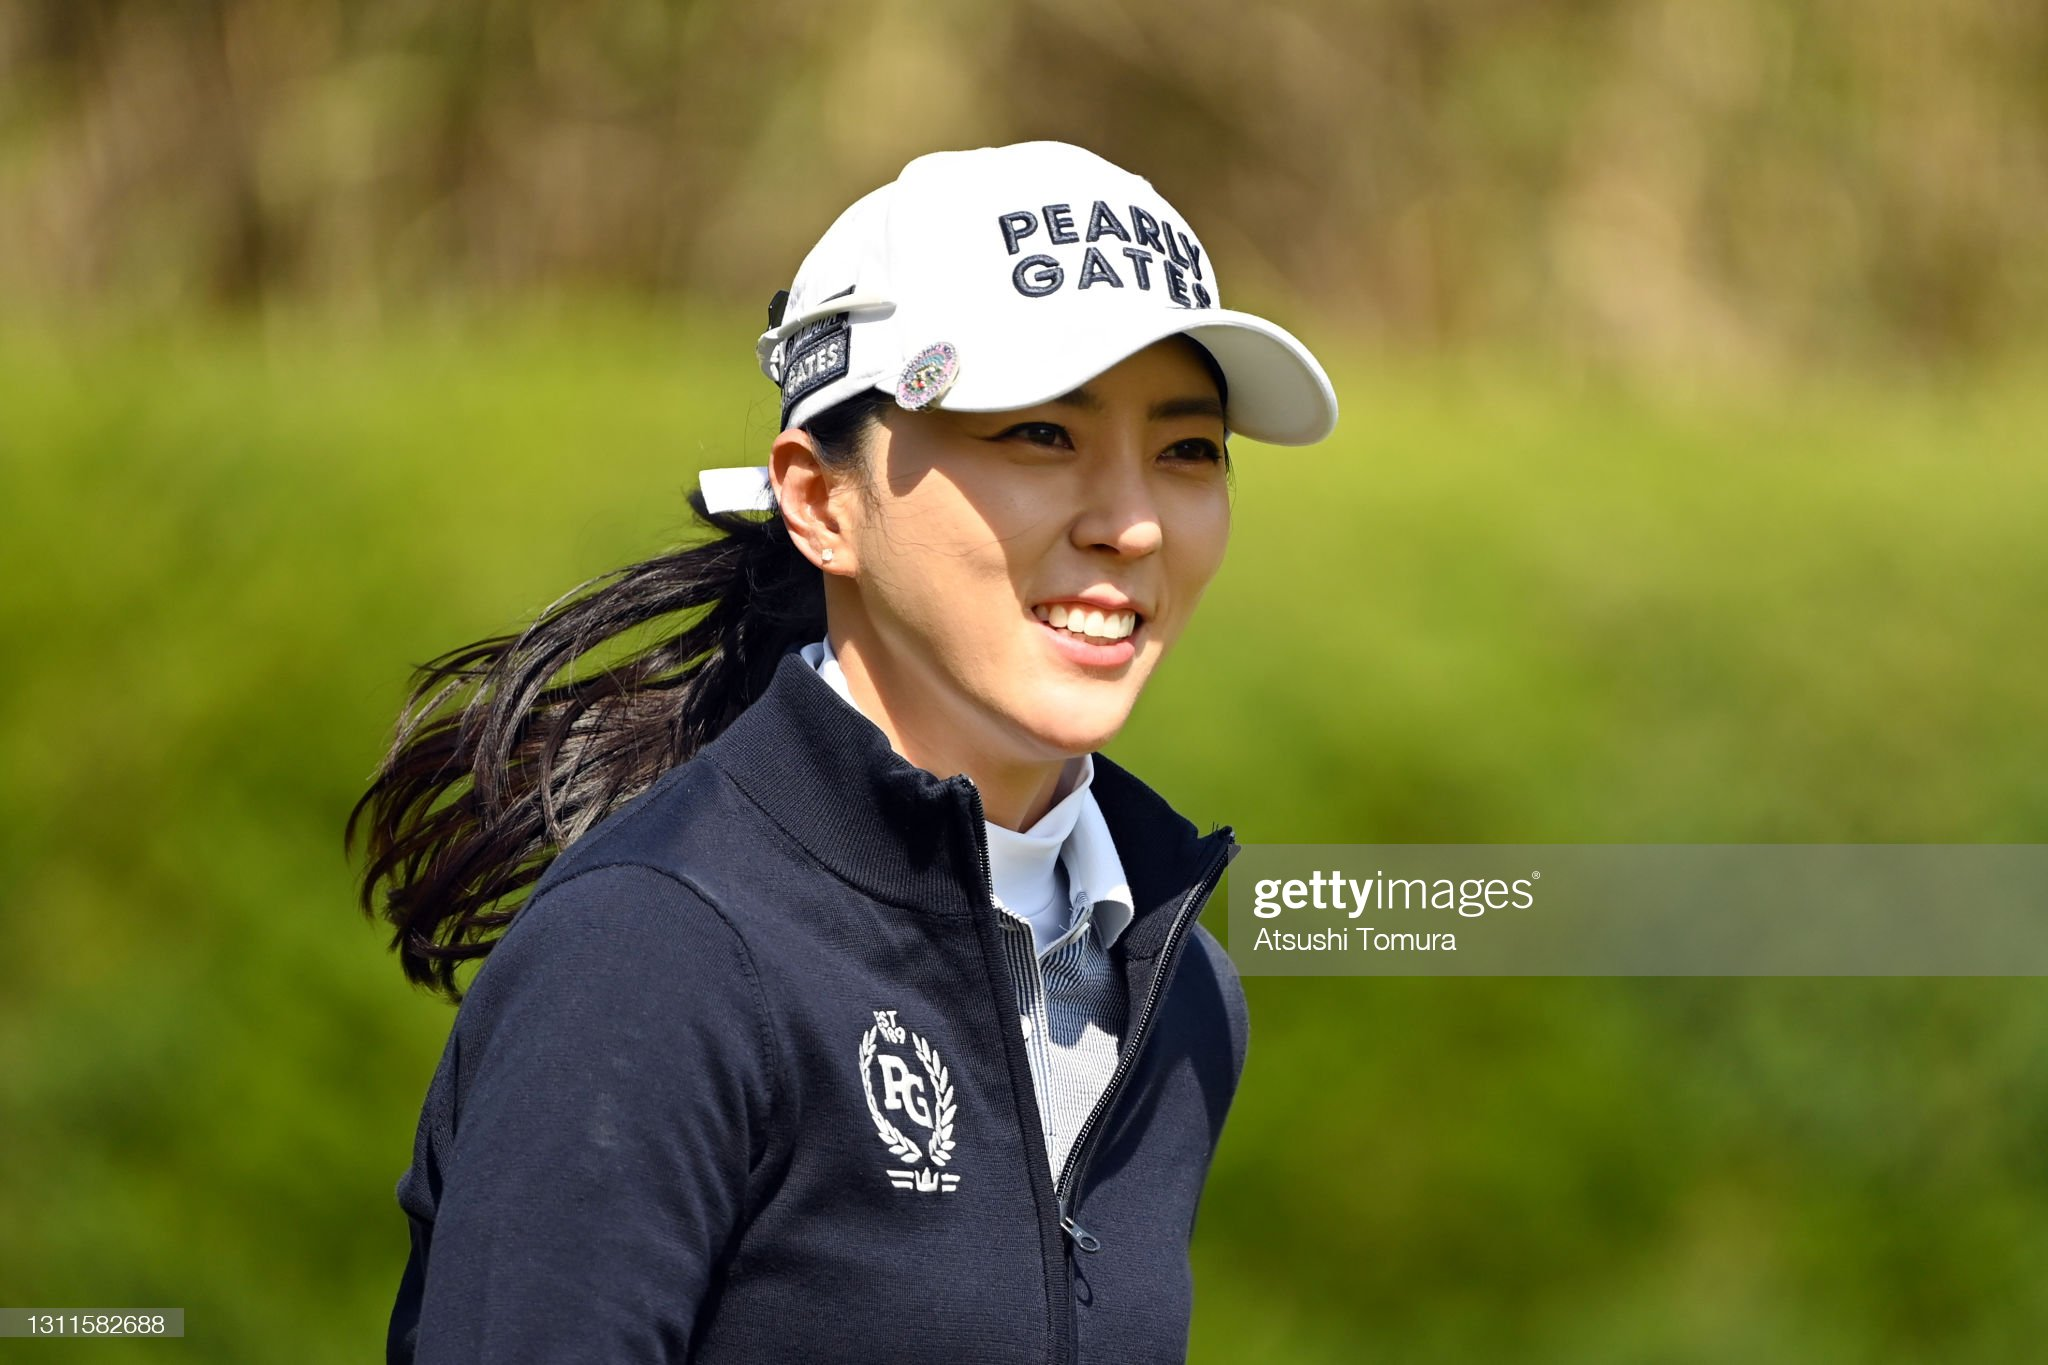 https://media.gettyimages.com/photos/chaeyoung-yoon-of-south-korea-smiles-on-the-2nd-hole-during-the-first-picture-id1311582688?s=2048x2048